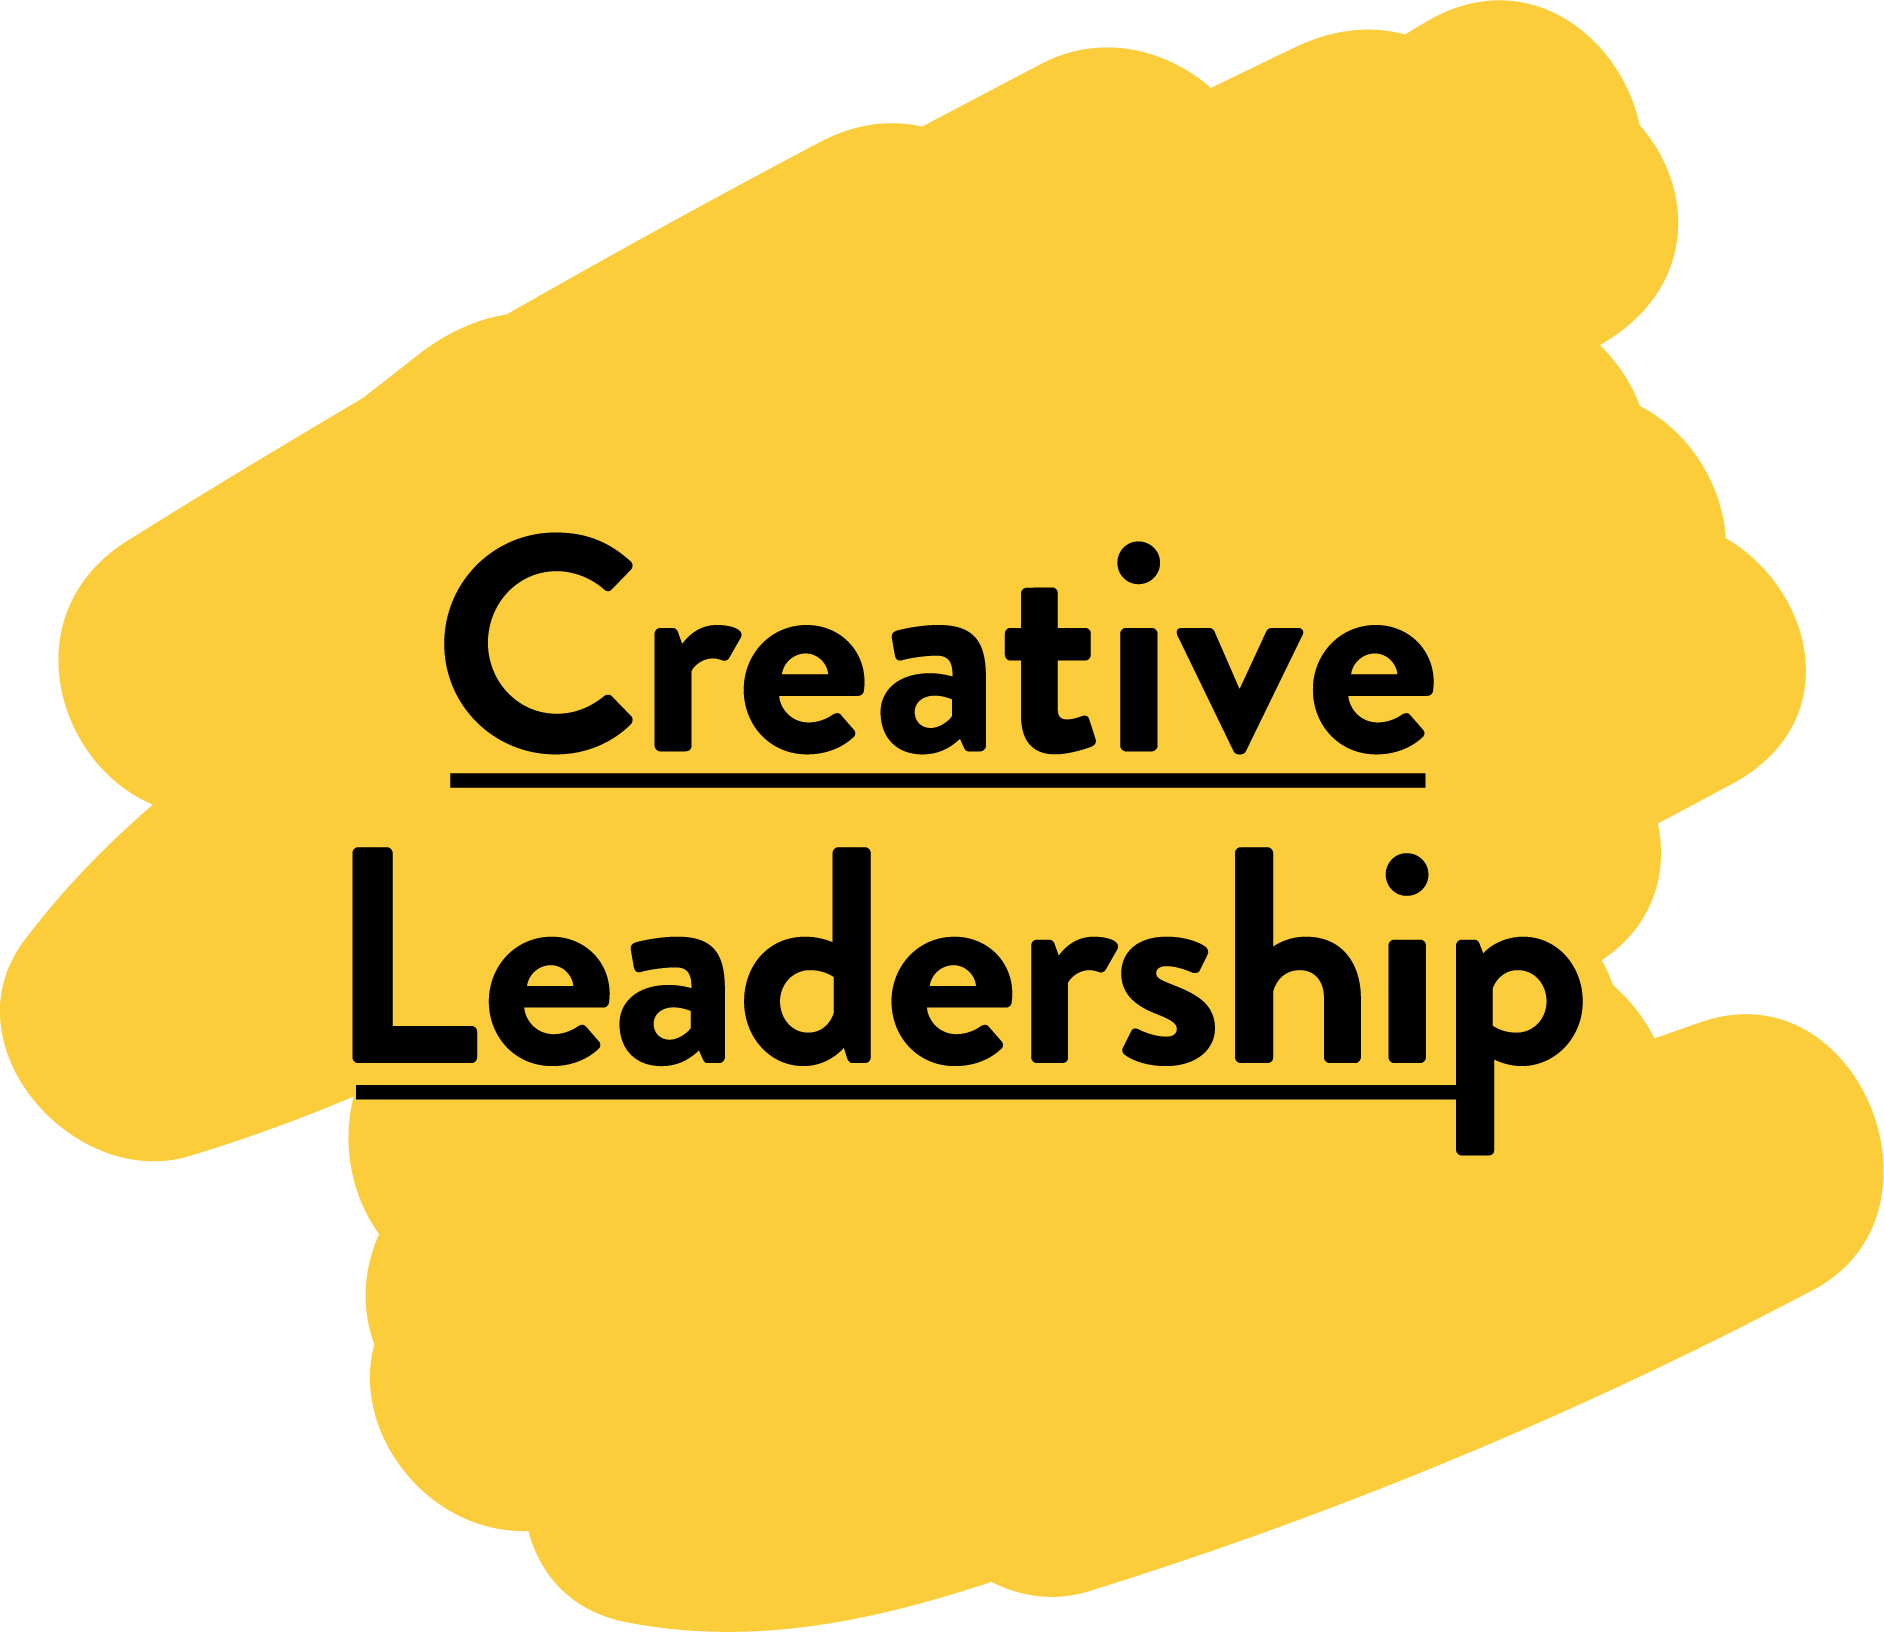 CreativeLeadershipC